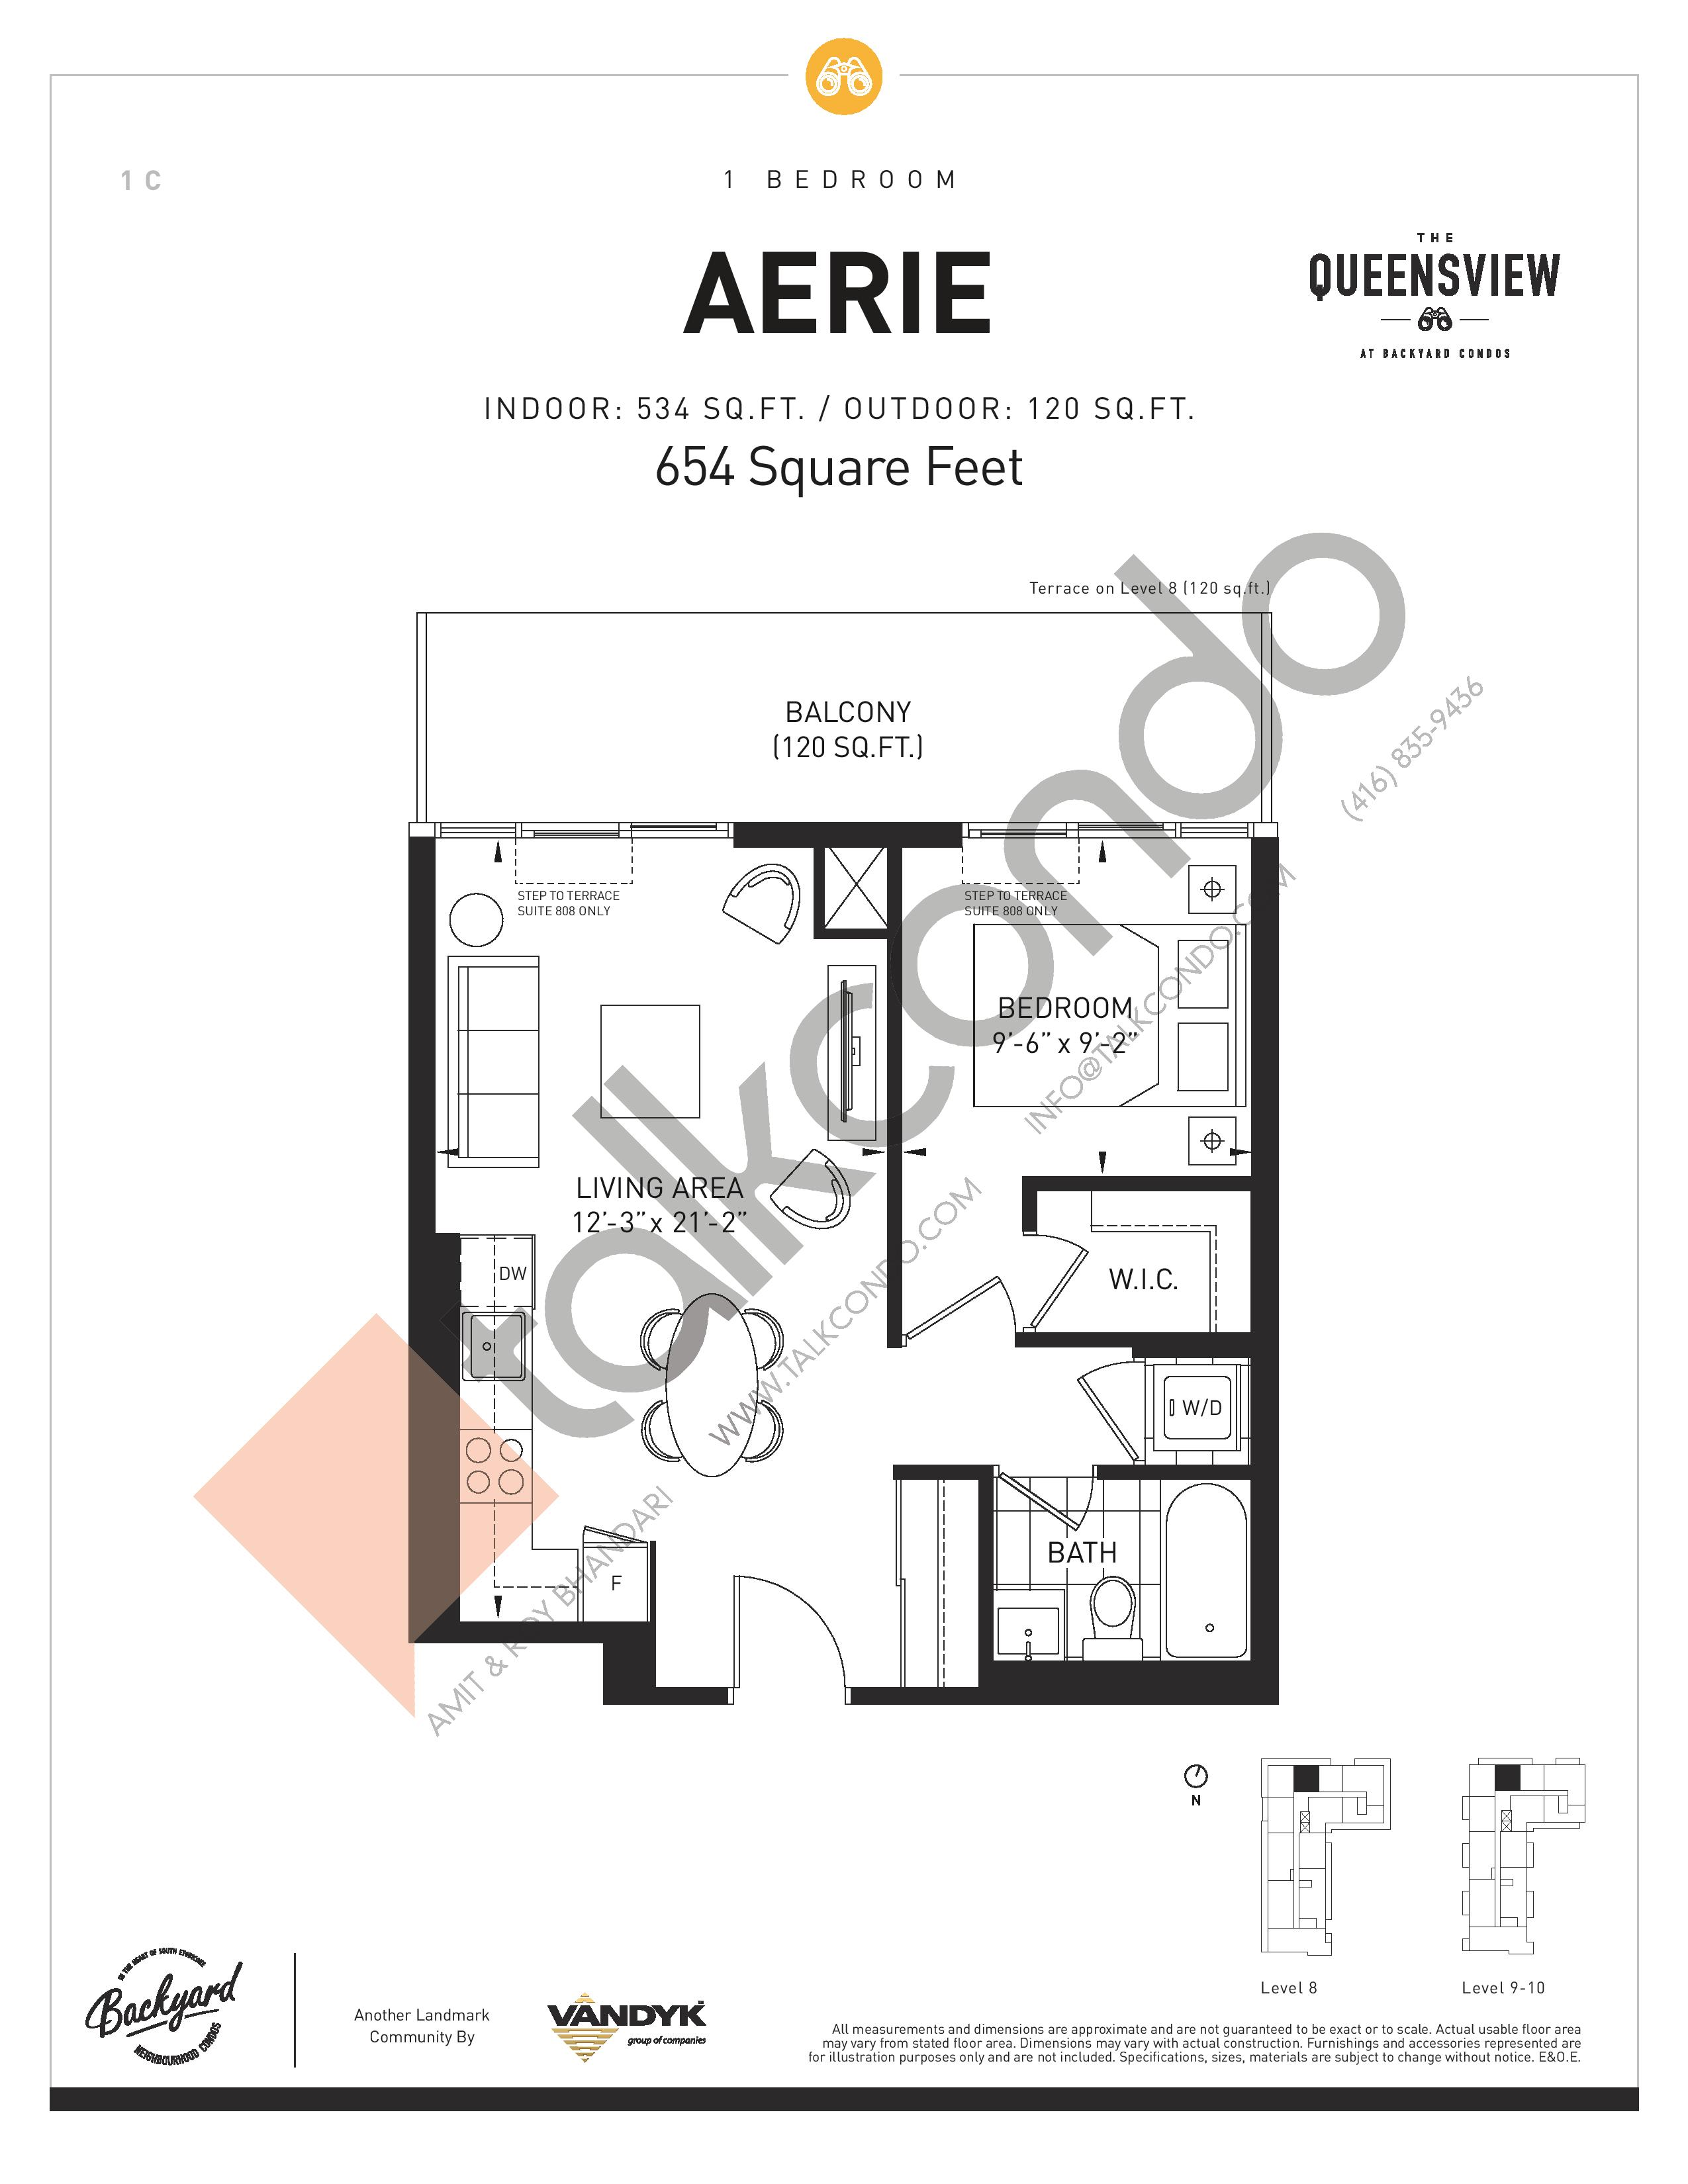 Aerie Floor Plan at The Queensview at Backyard Condos - 534 sq.ft